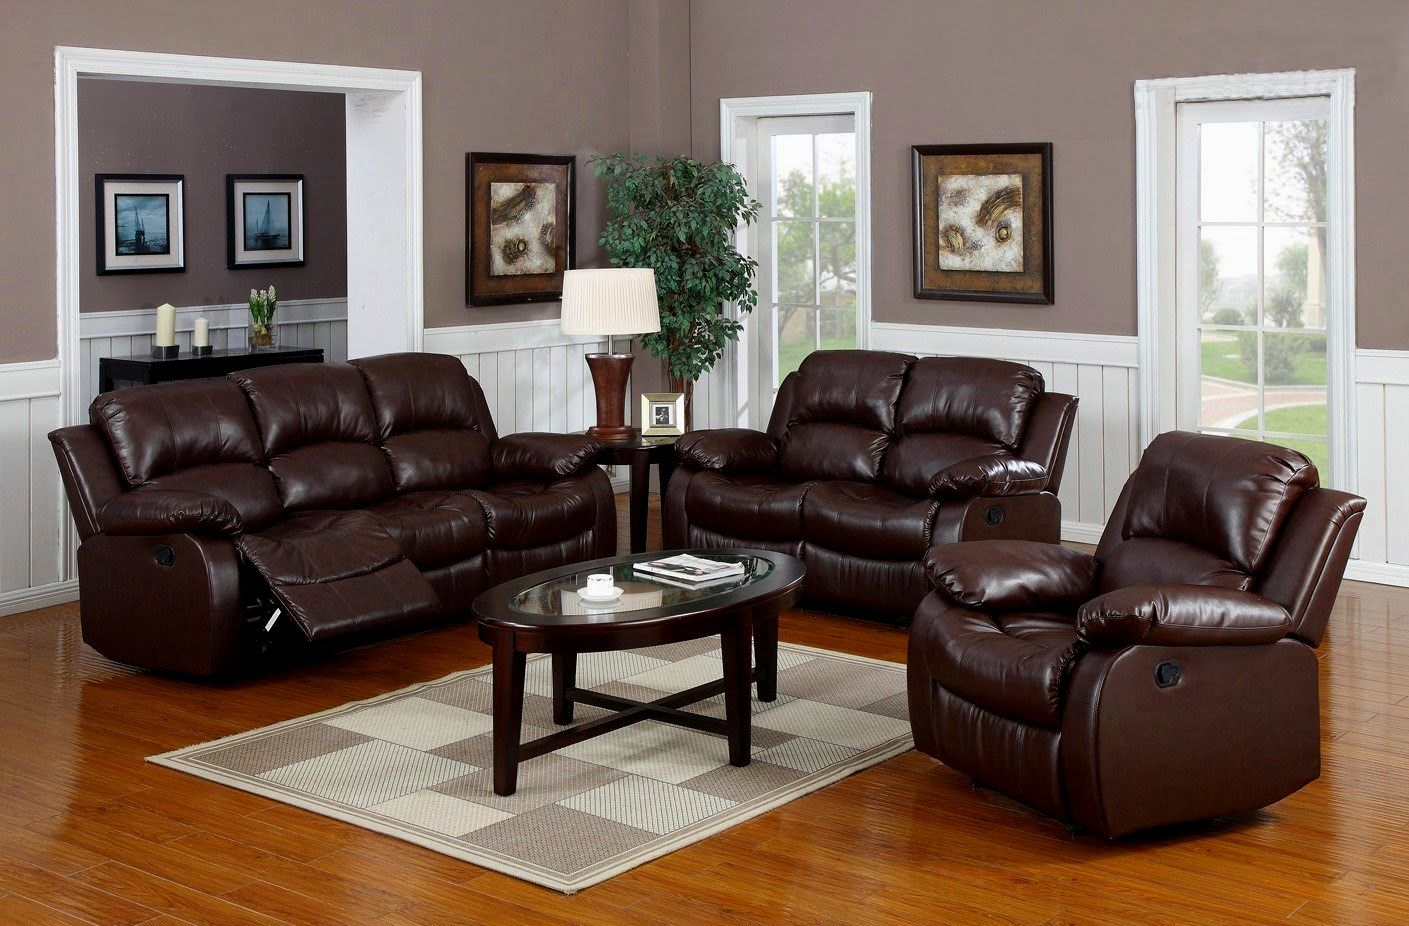 top cheap recliner sofas design-Inspirational Cheap Recliner sofas Construction